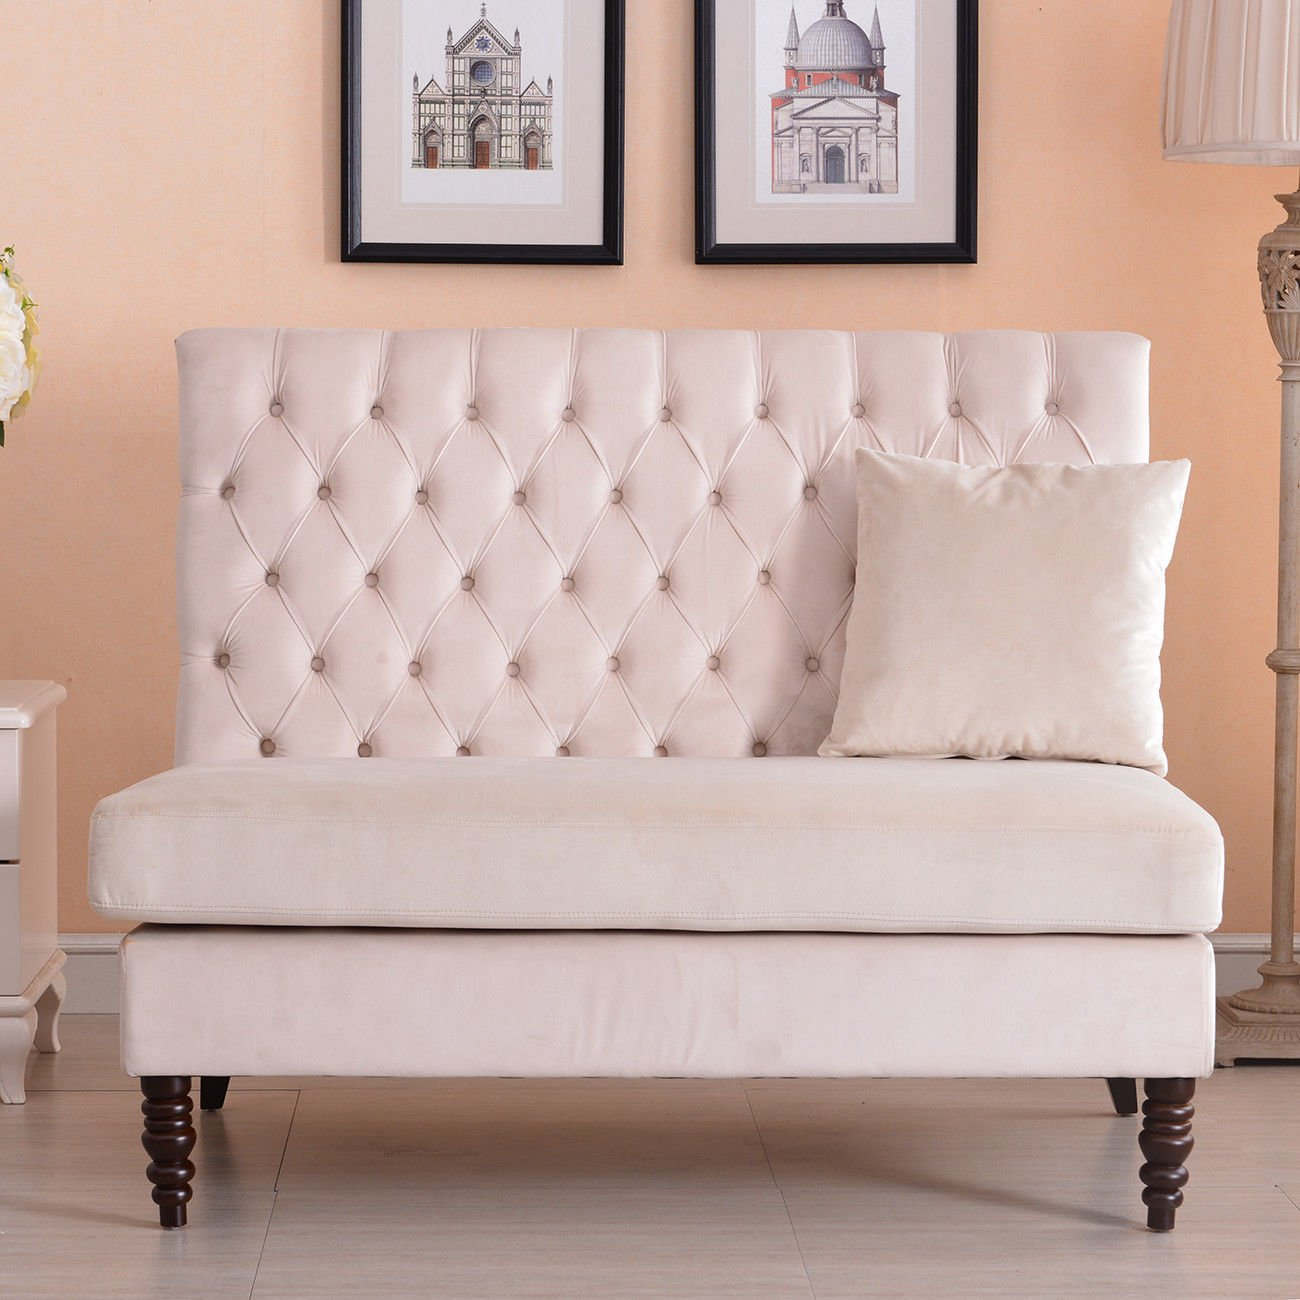 Loveseat Couch Sofa Upholstered Button Tufted Nailhead High Back Settee Beige